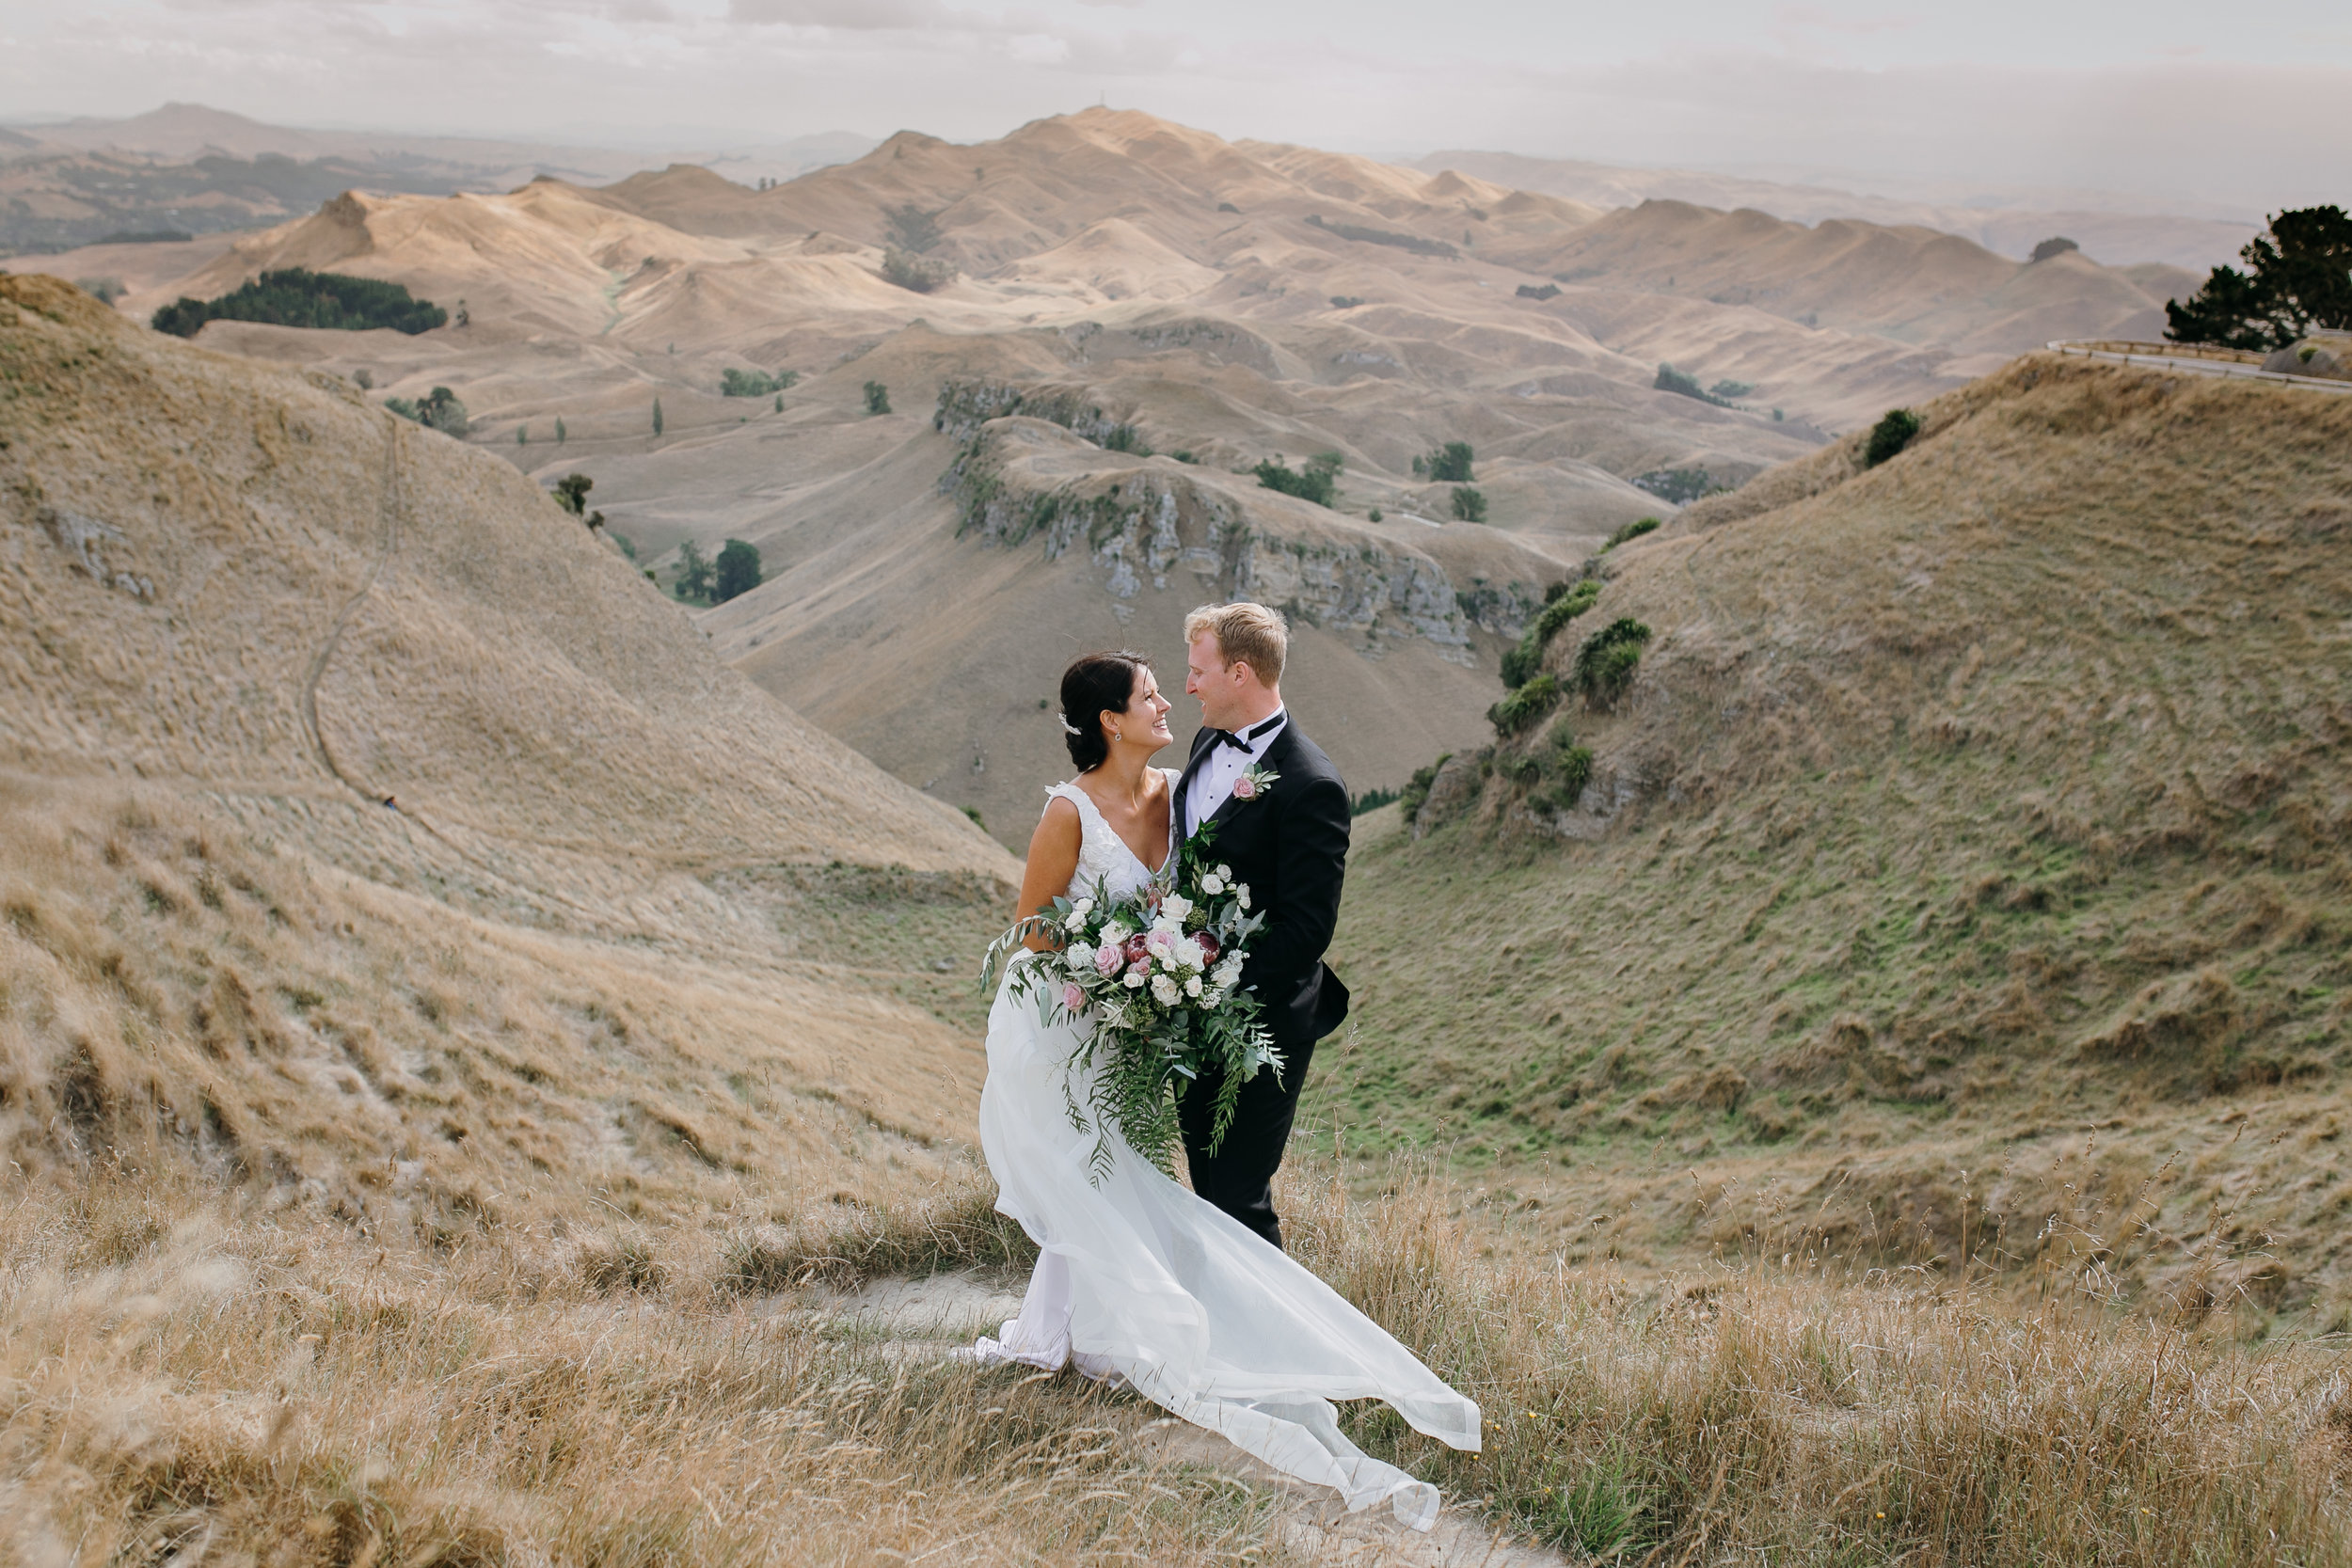 005-Hawkes_Bay_Wedding_Photographer_ASH_Photography.jpg